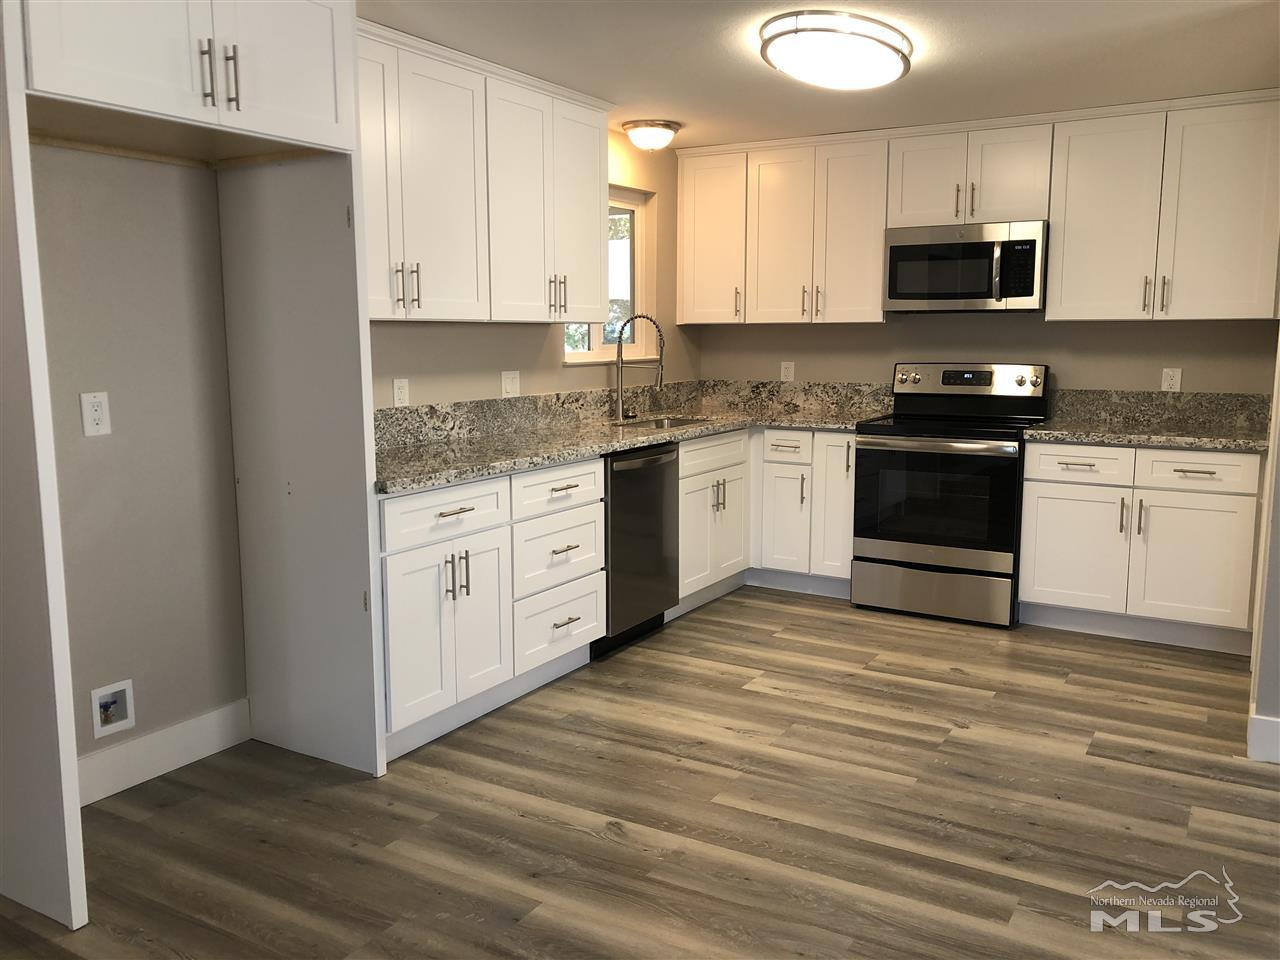 Image for 4095 Billy, Reno, NV 89502-5302